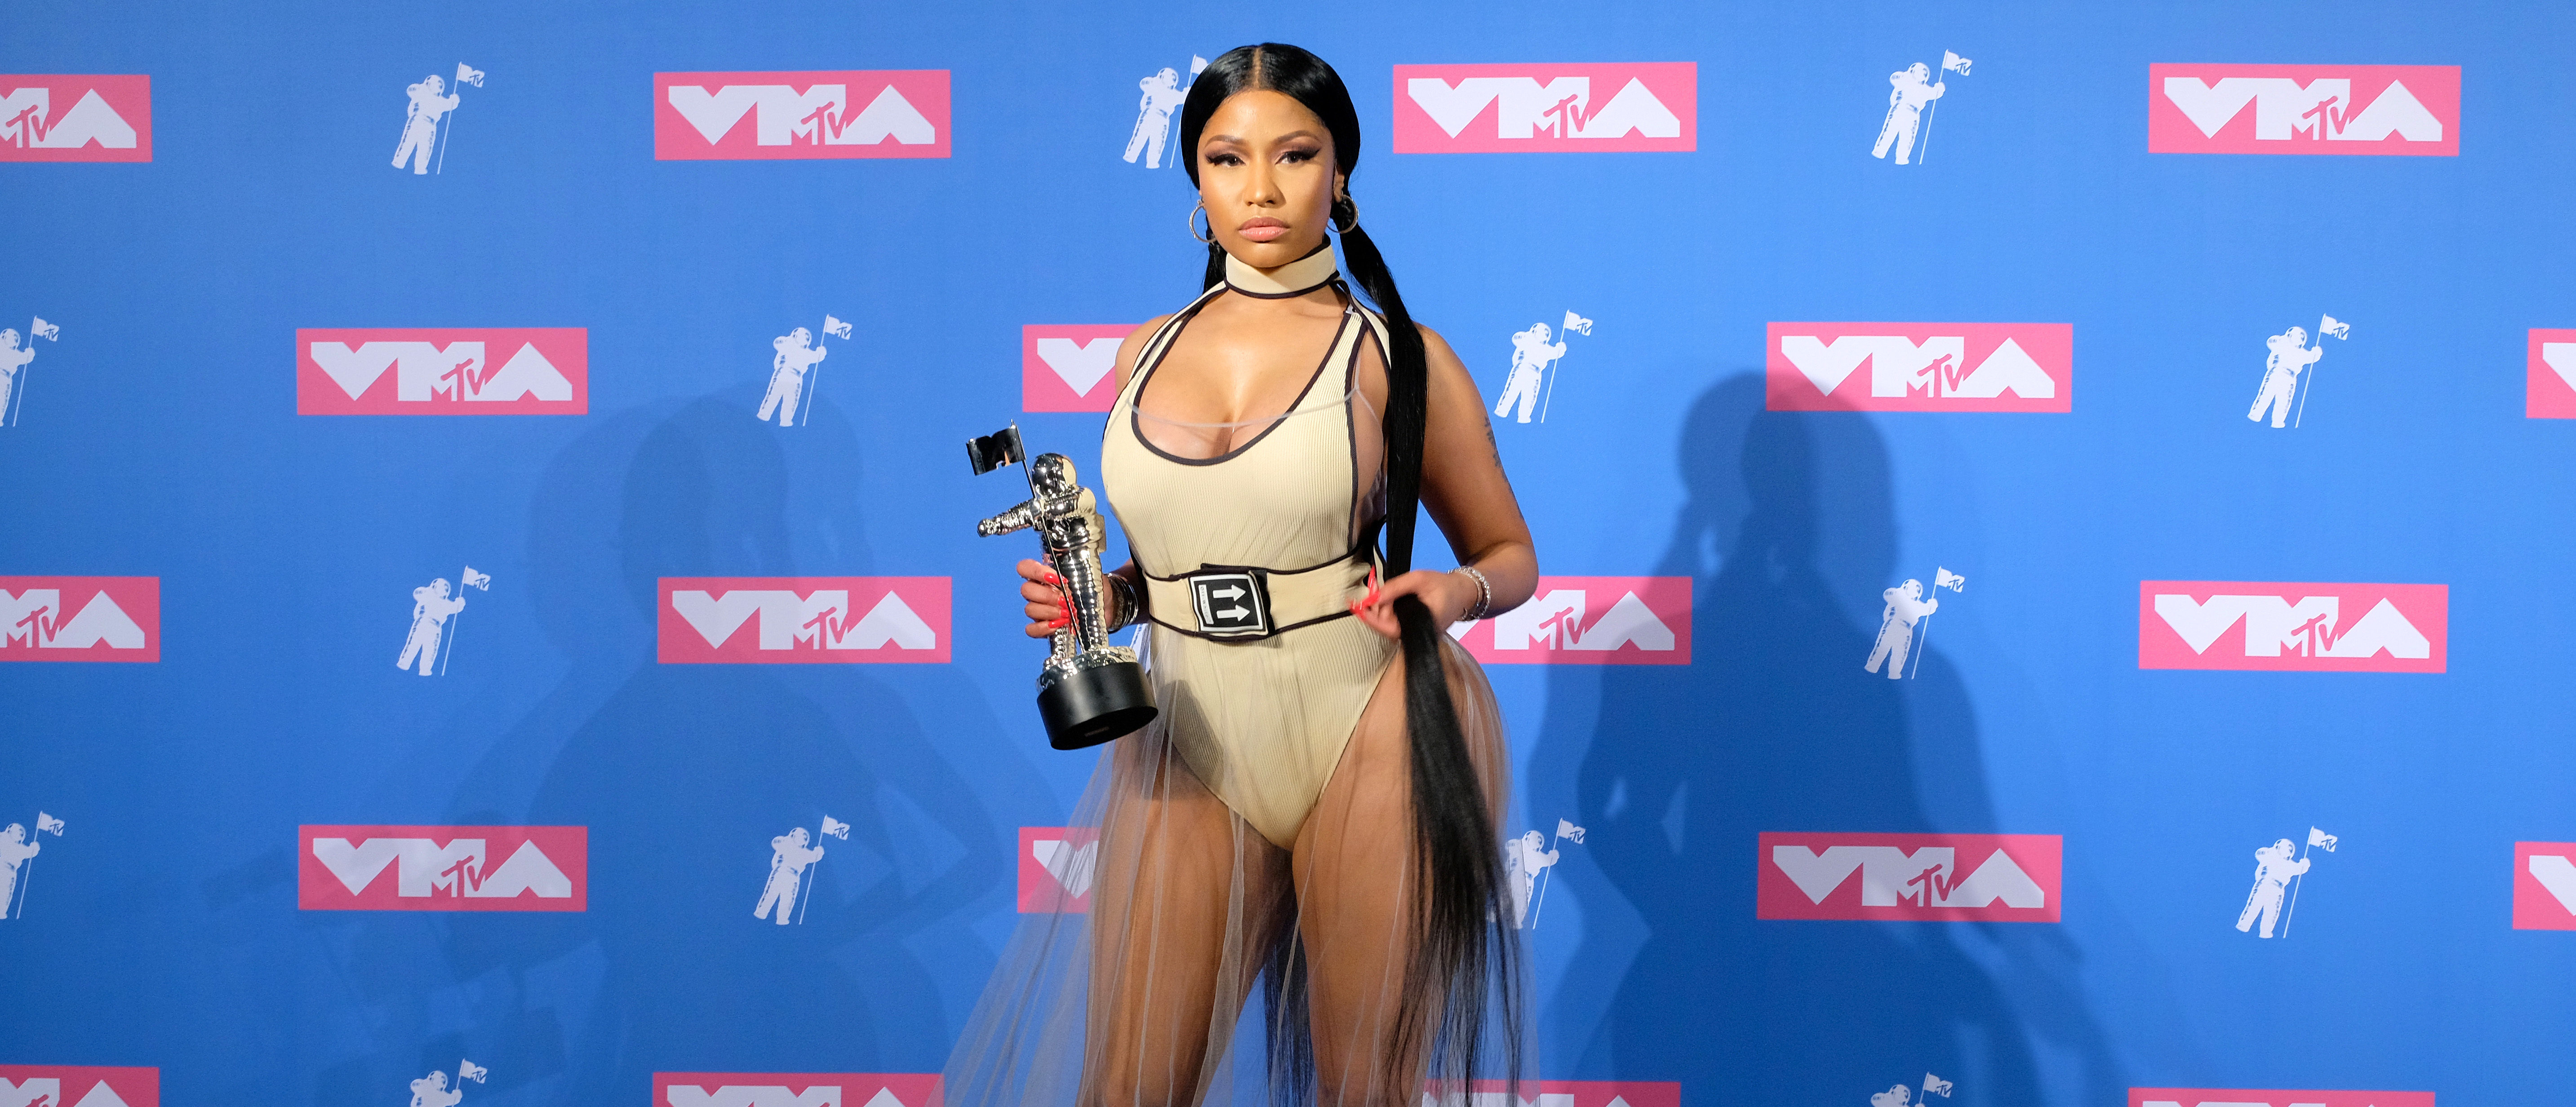 NEW YORK, NY - AUGUST 20: Nicki Minaj attends the 2018 MTV Video Music Awards Press Room at Radio City Music Hall on August 20, 2018 in New York City. (Photo by Matthew Eisman/Getty Images)